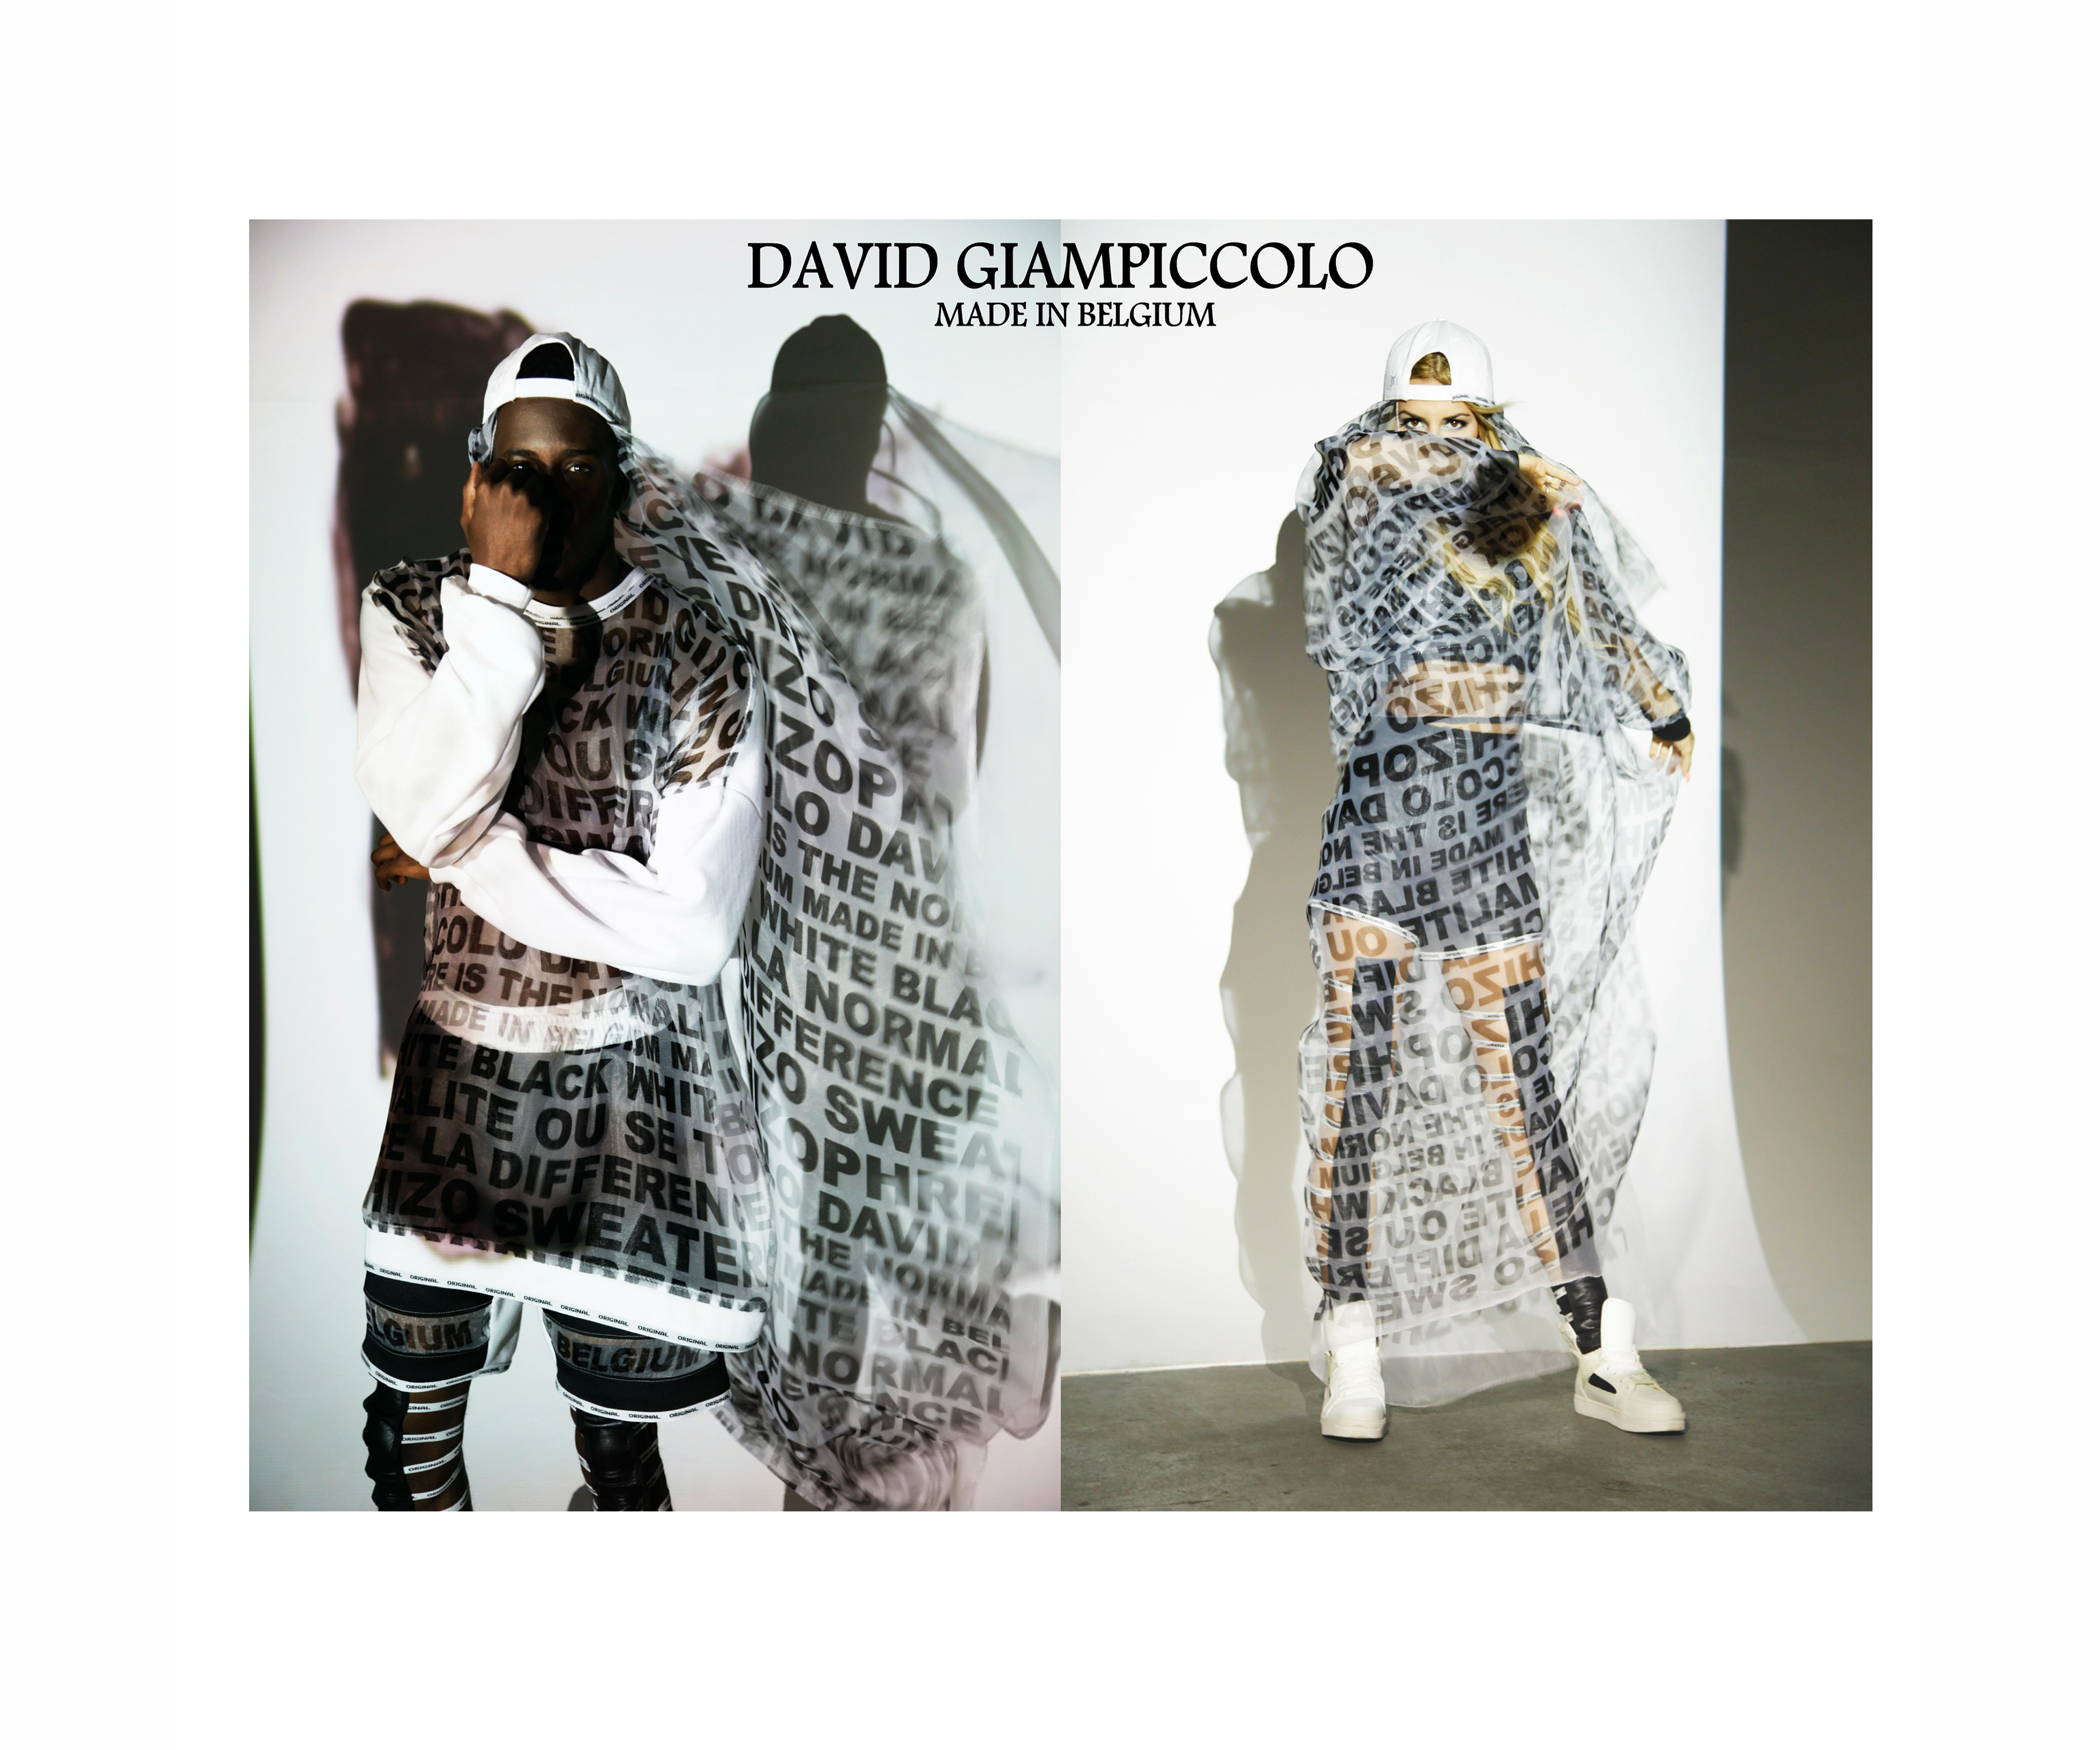 Bukunmi Grace Ajanaku David Giampiccolo SCHIZO Fall Winter 2014 Image Two